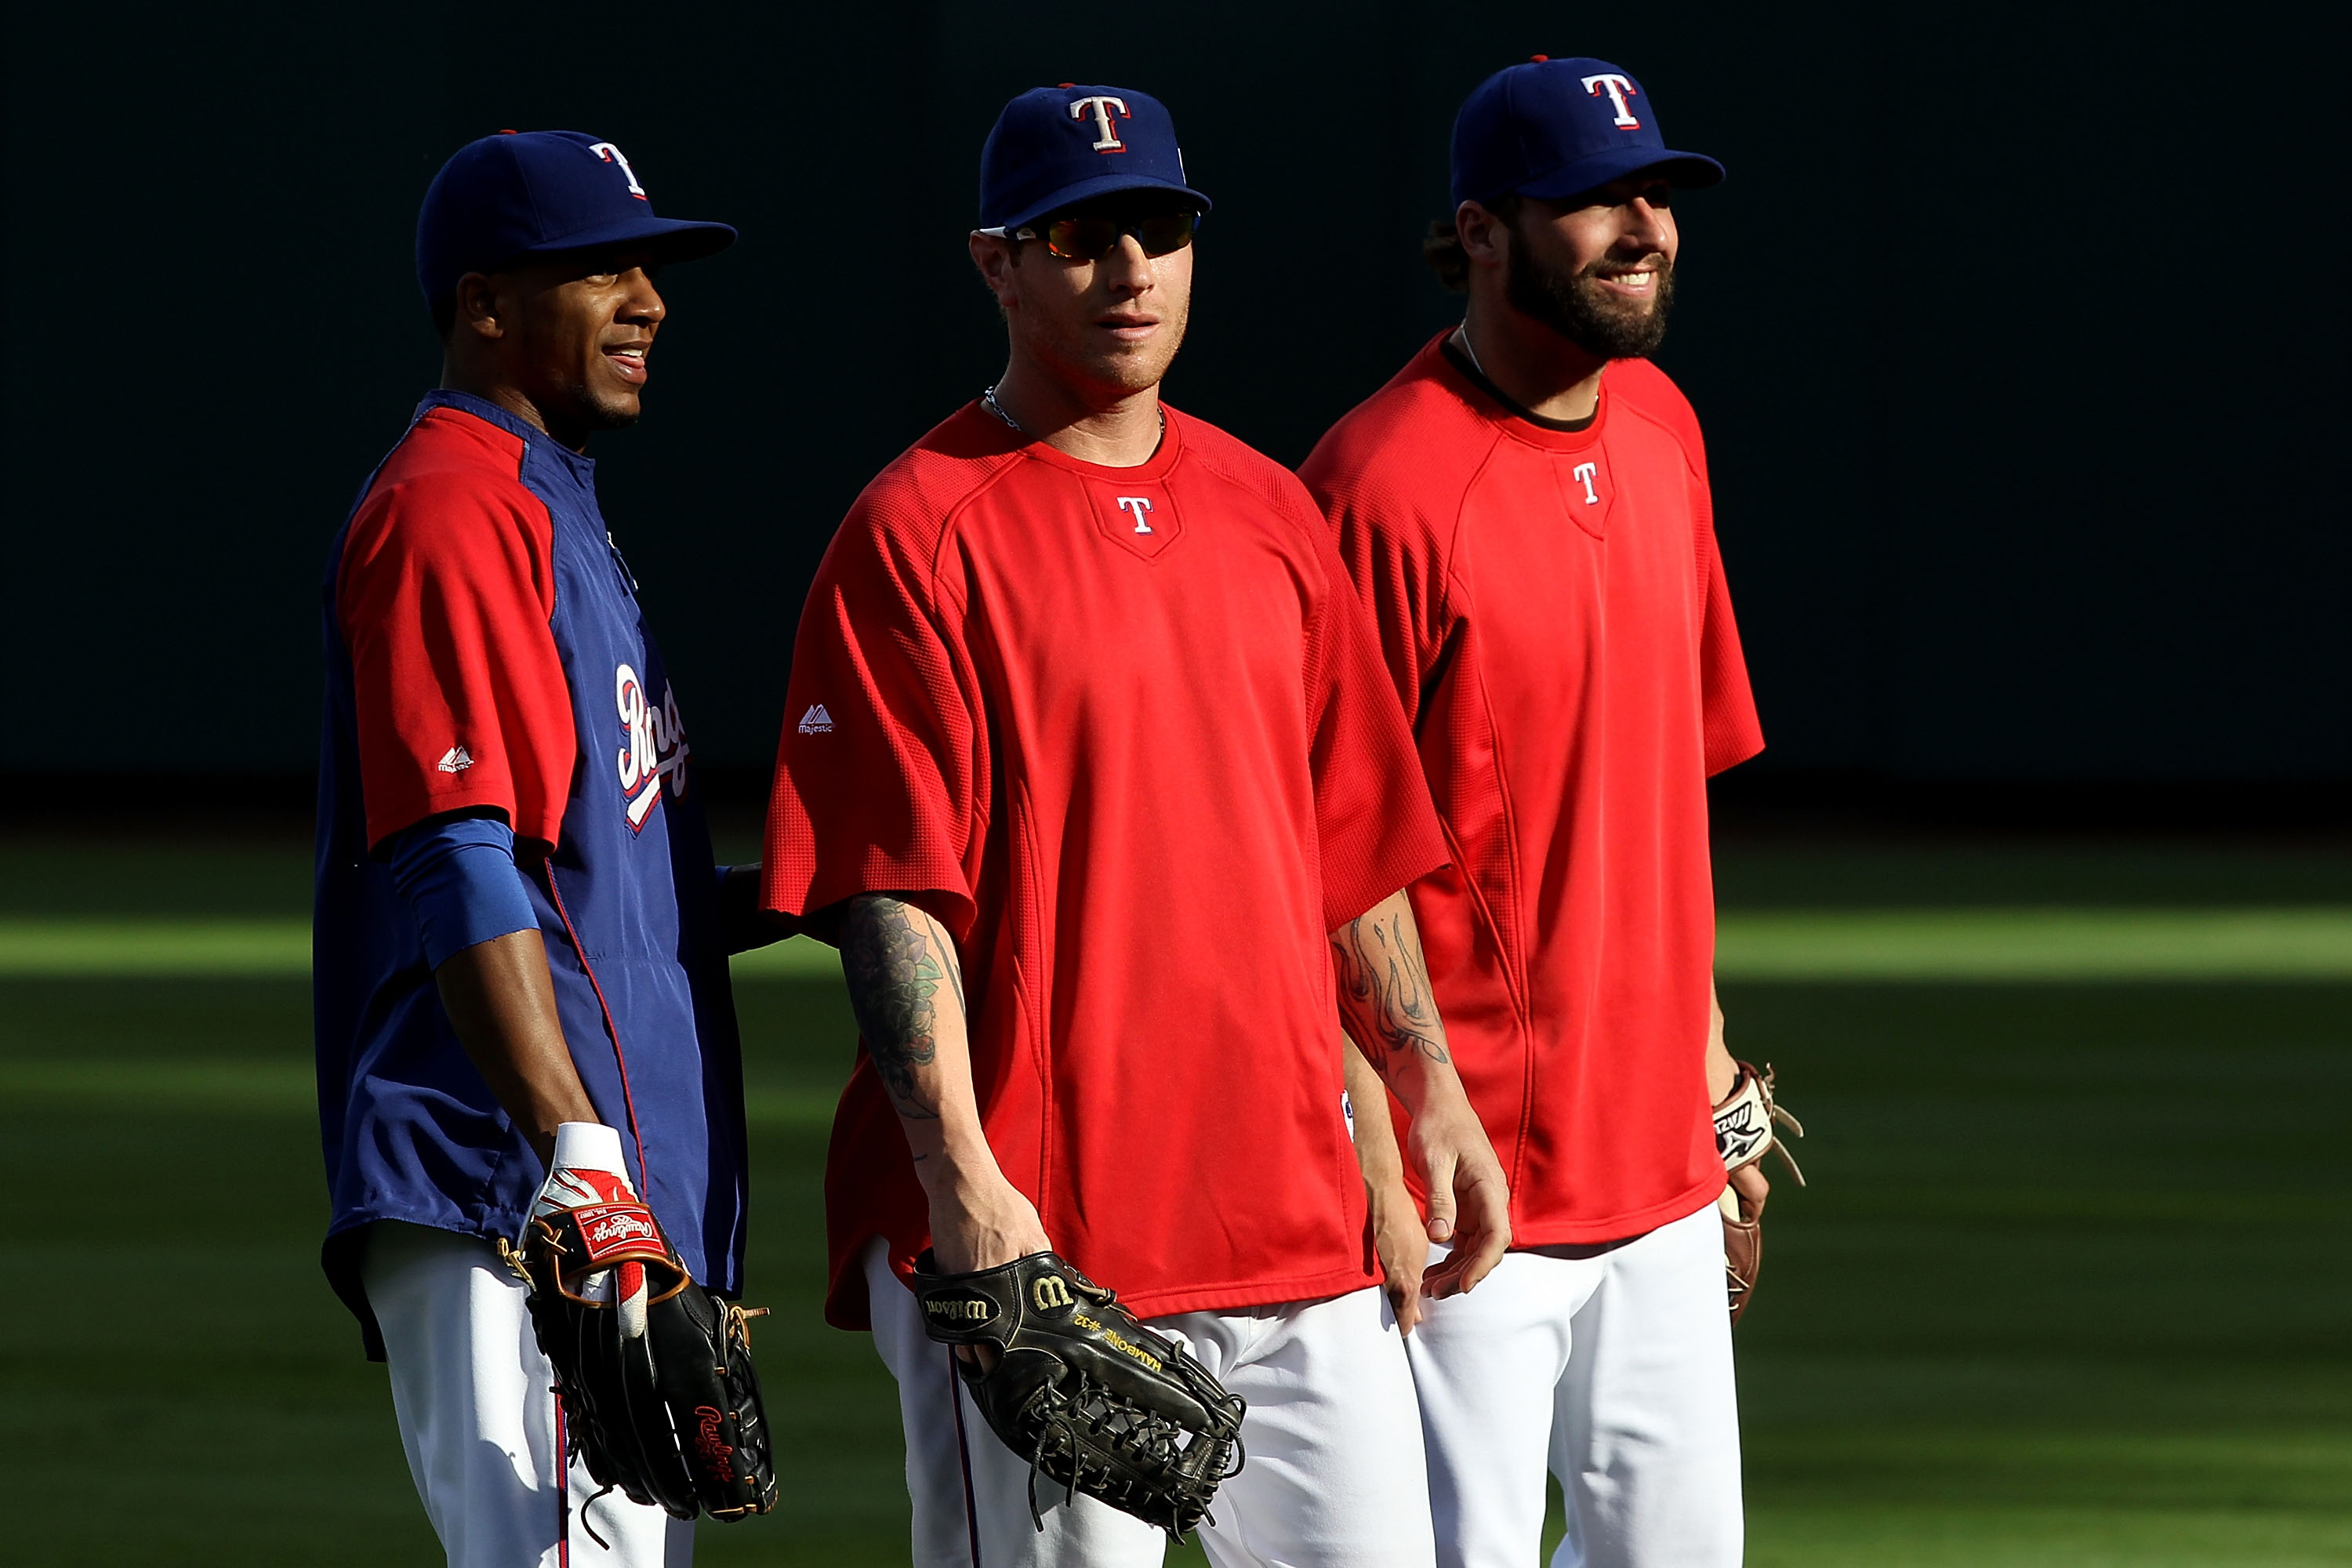 ARLINGTON, TX - OCTOBER 31:  (L-R) Julio Borbon #29, Josh Hamilton #32 and Jeff Francoeur #21 of the Texas Rangers look on during batting practice against the San Francisco Giants in Game Four of the 2010 MLB World Series at Rangers Ballpark in Arlington